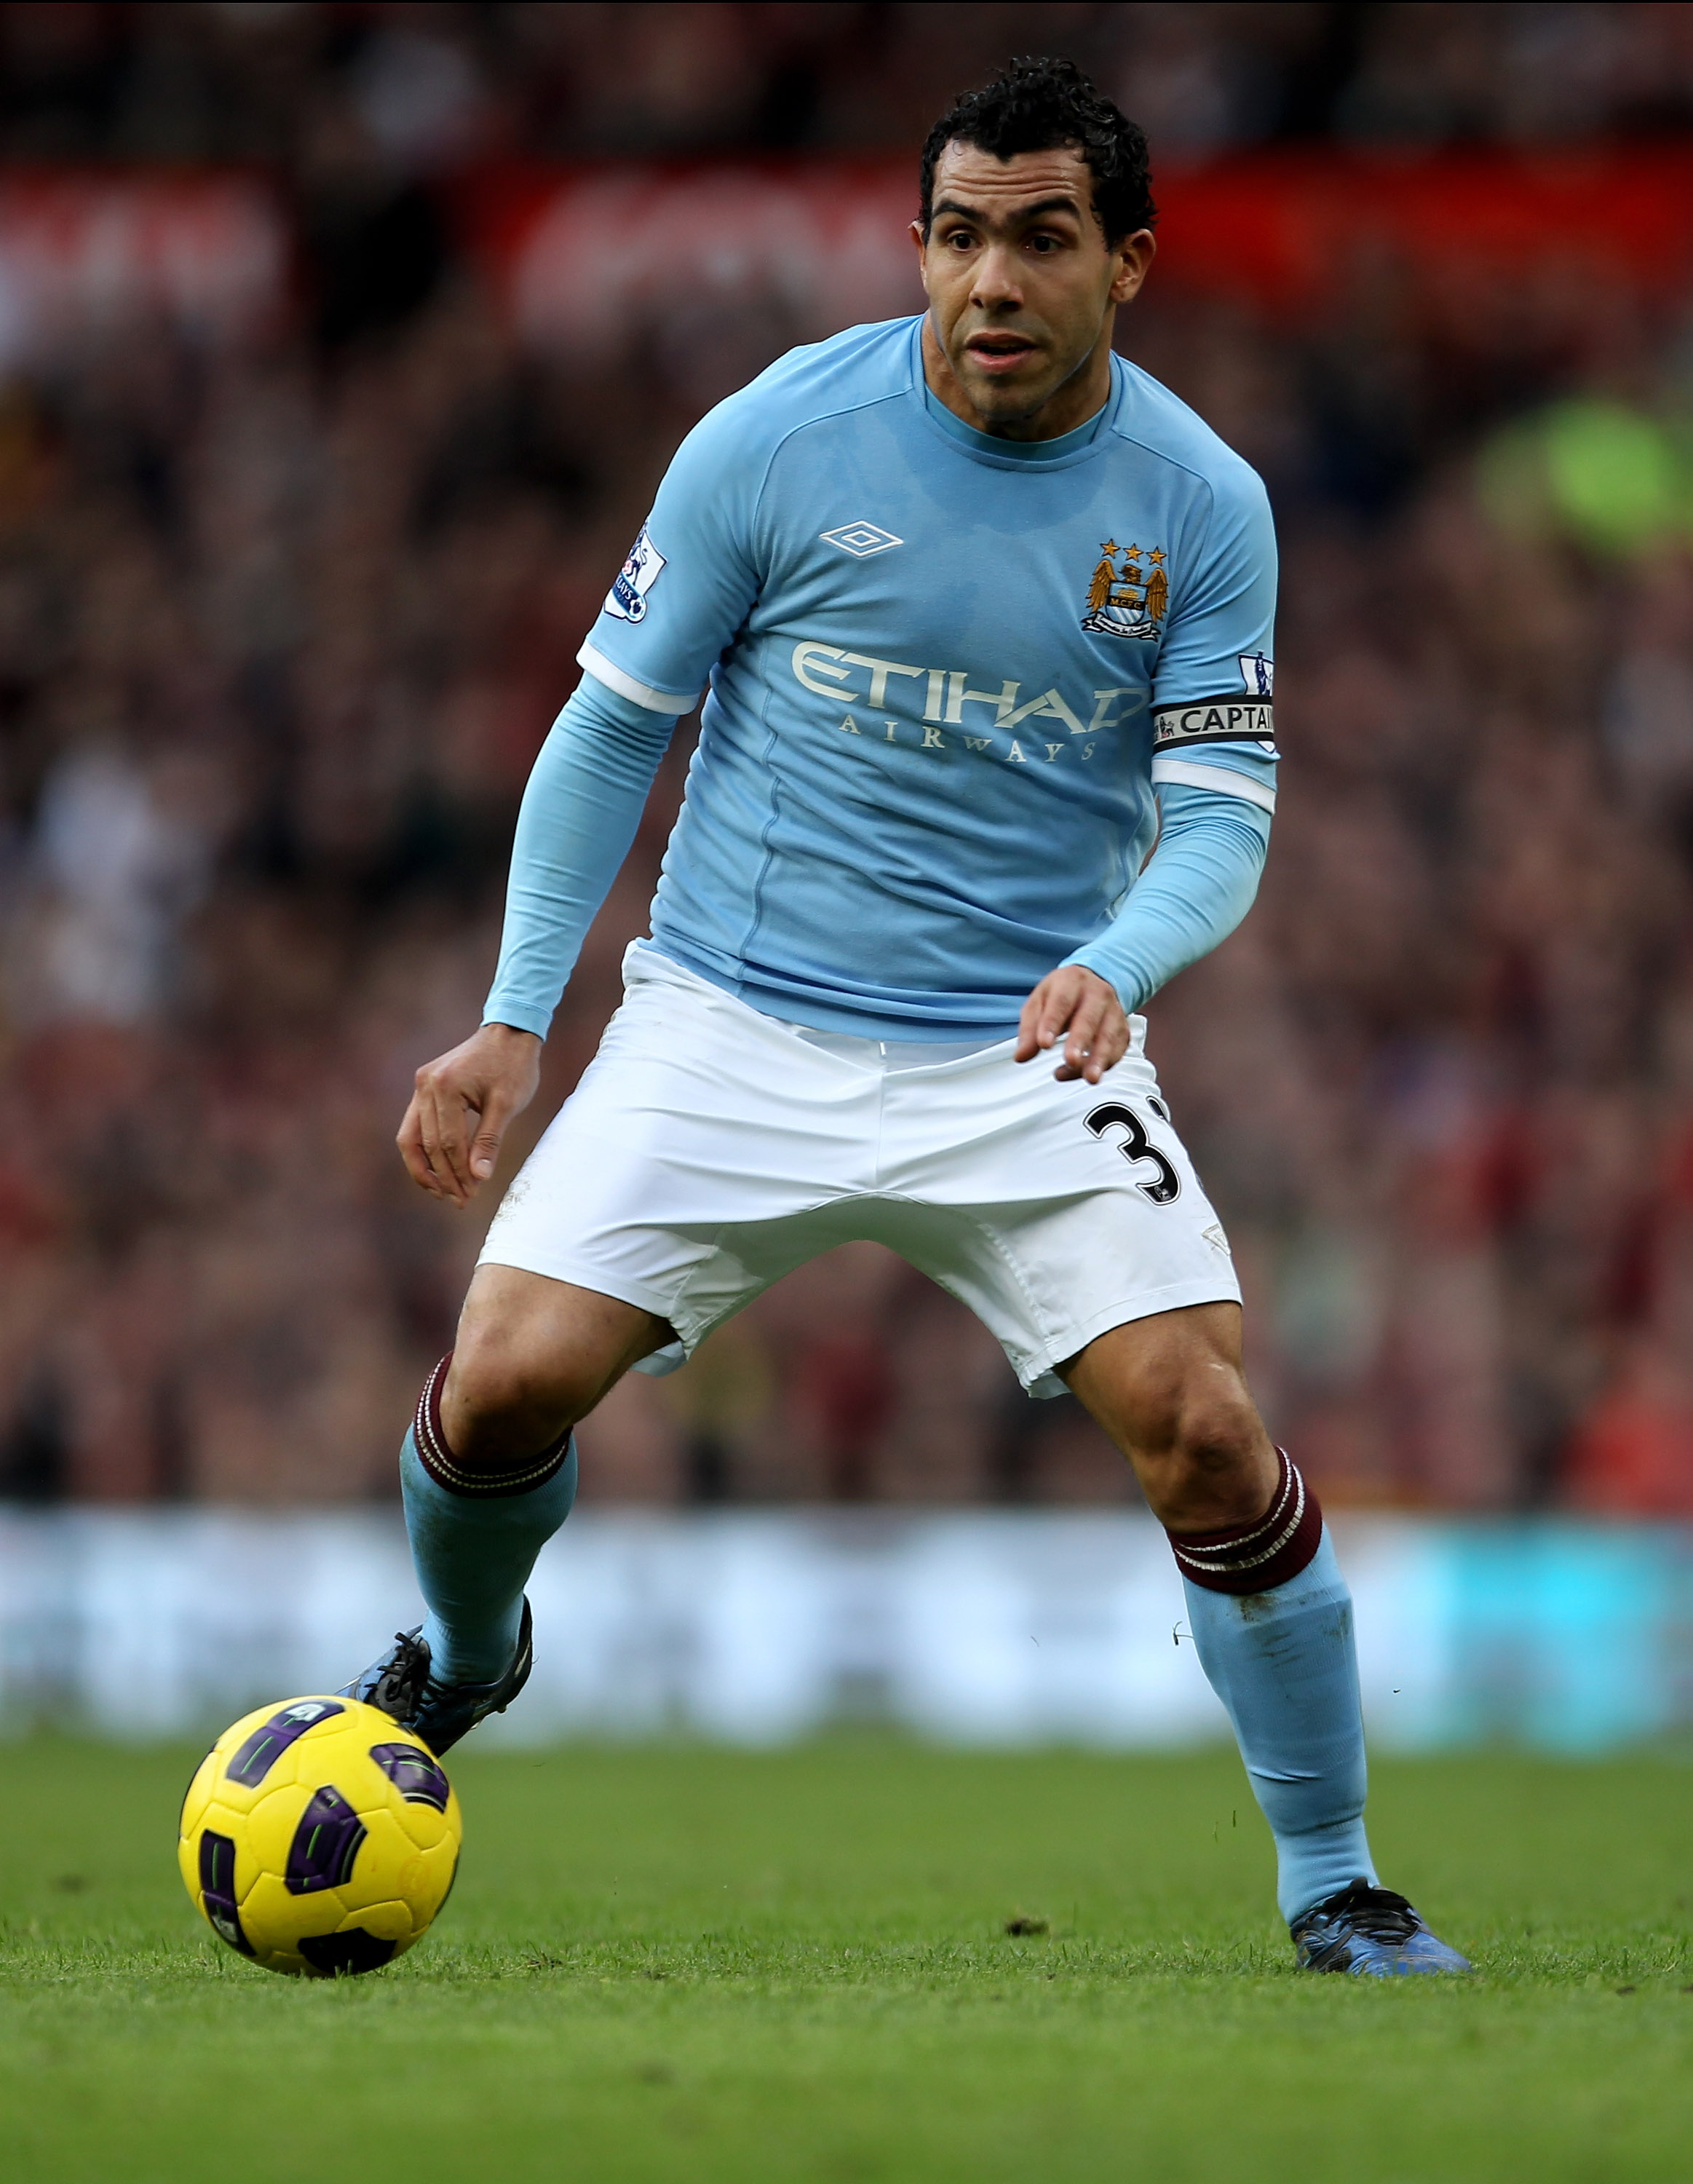 MANCHESTER, ENGLAND - FEBRUARY 12:  Carlos Tevez of Manchester City in action during the Barclays Premier League match between Manchester United and Manchester City at Old Trafford on February 12, 2011 in Manchester, England.  (Photo by Alex Livesey/Getty